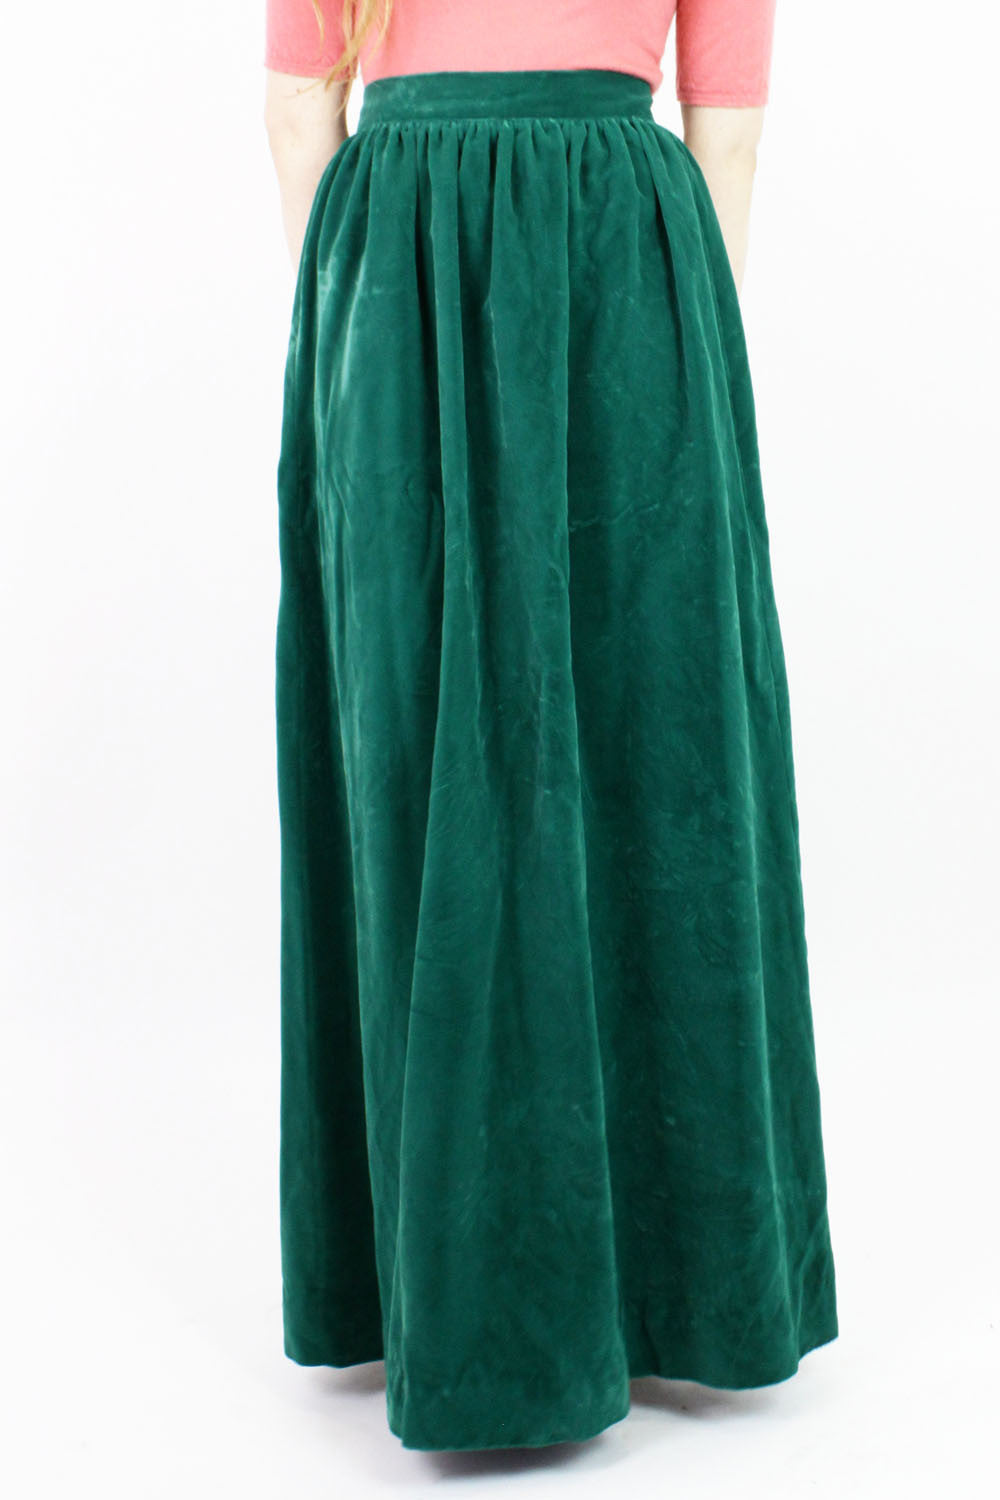 SALE / Ivy Green Silk Velvet Maxi Skirt S